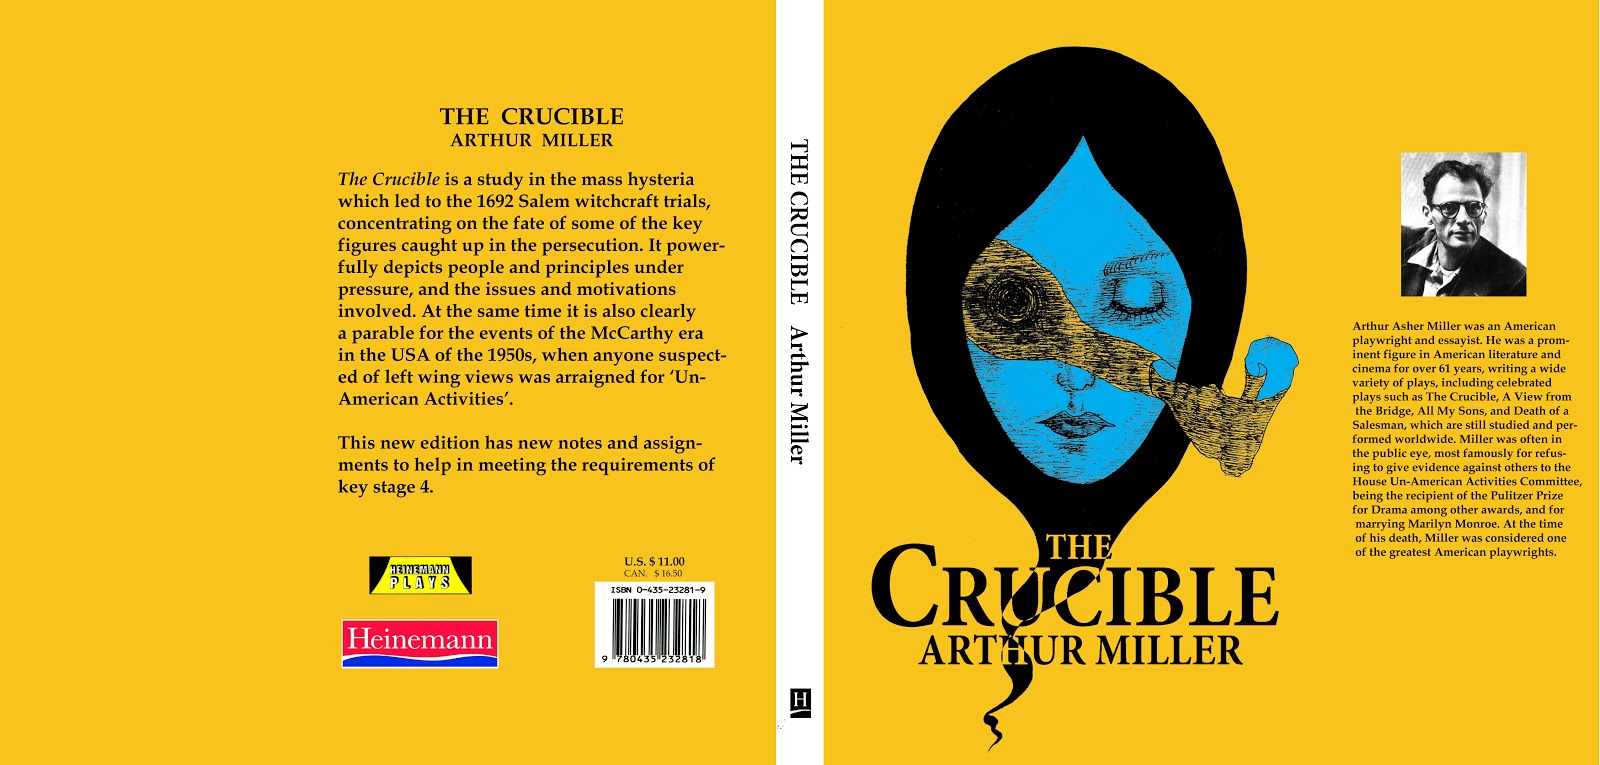 the use of power in th crucible by arthur miller